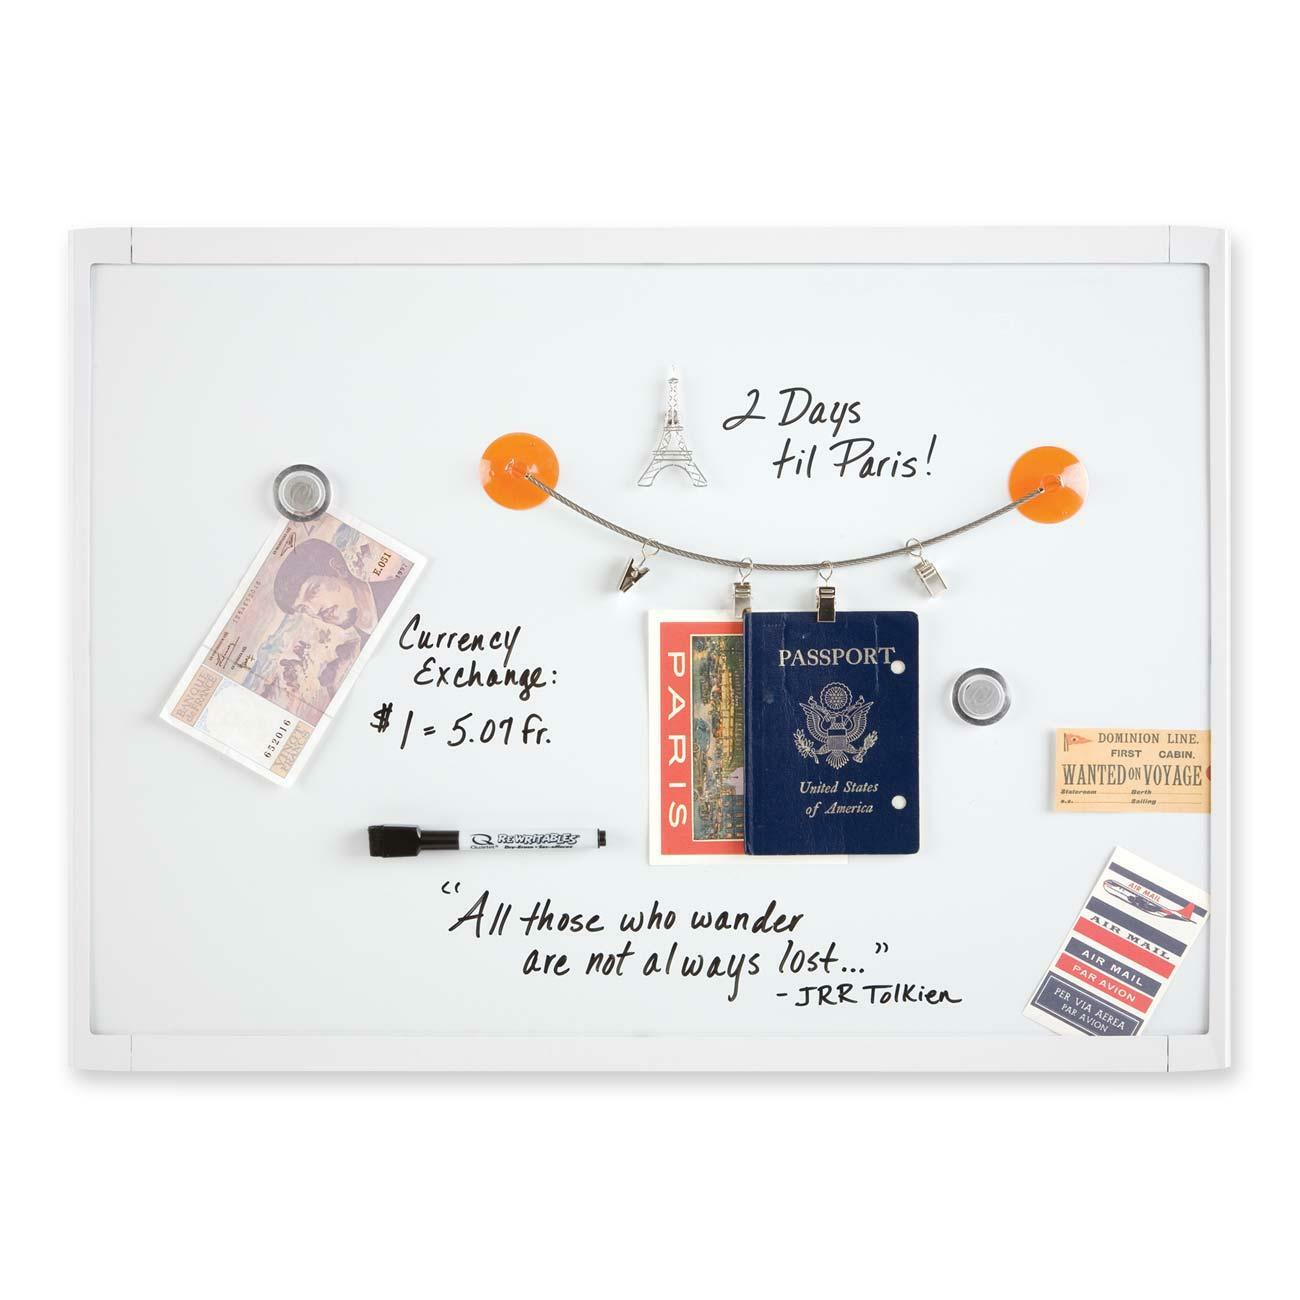 White Mini Magnetic Dry Erase Board Is Conveniently Sized For Home Or Office Messages Steel Backed Surface Lets You Write On The With